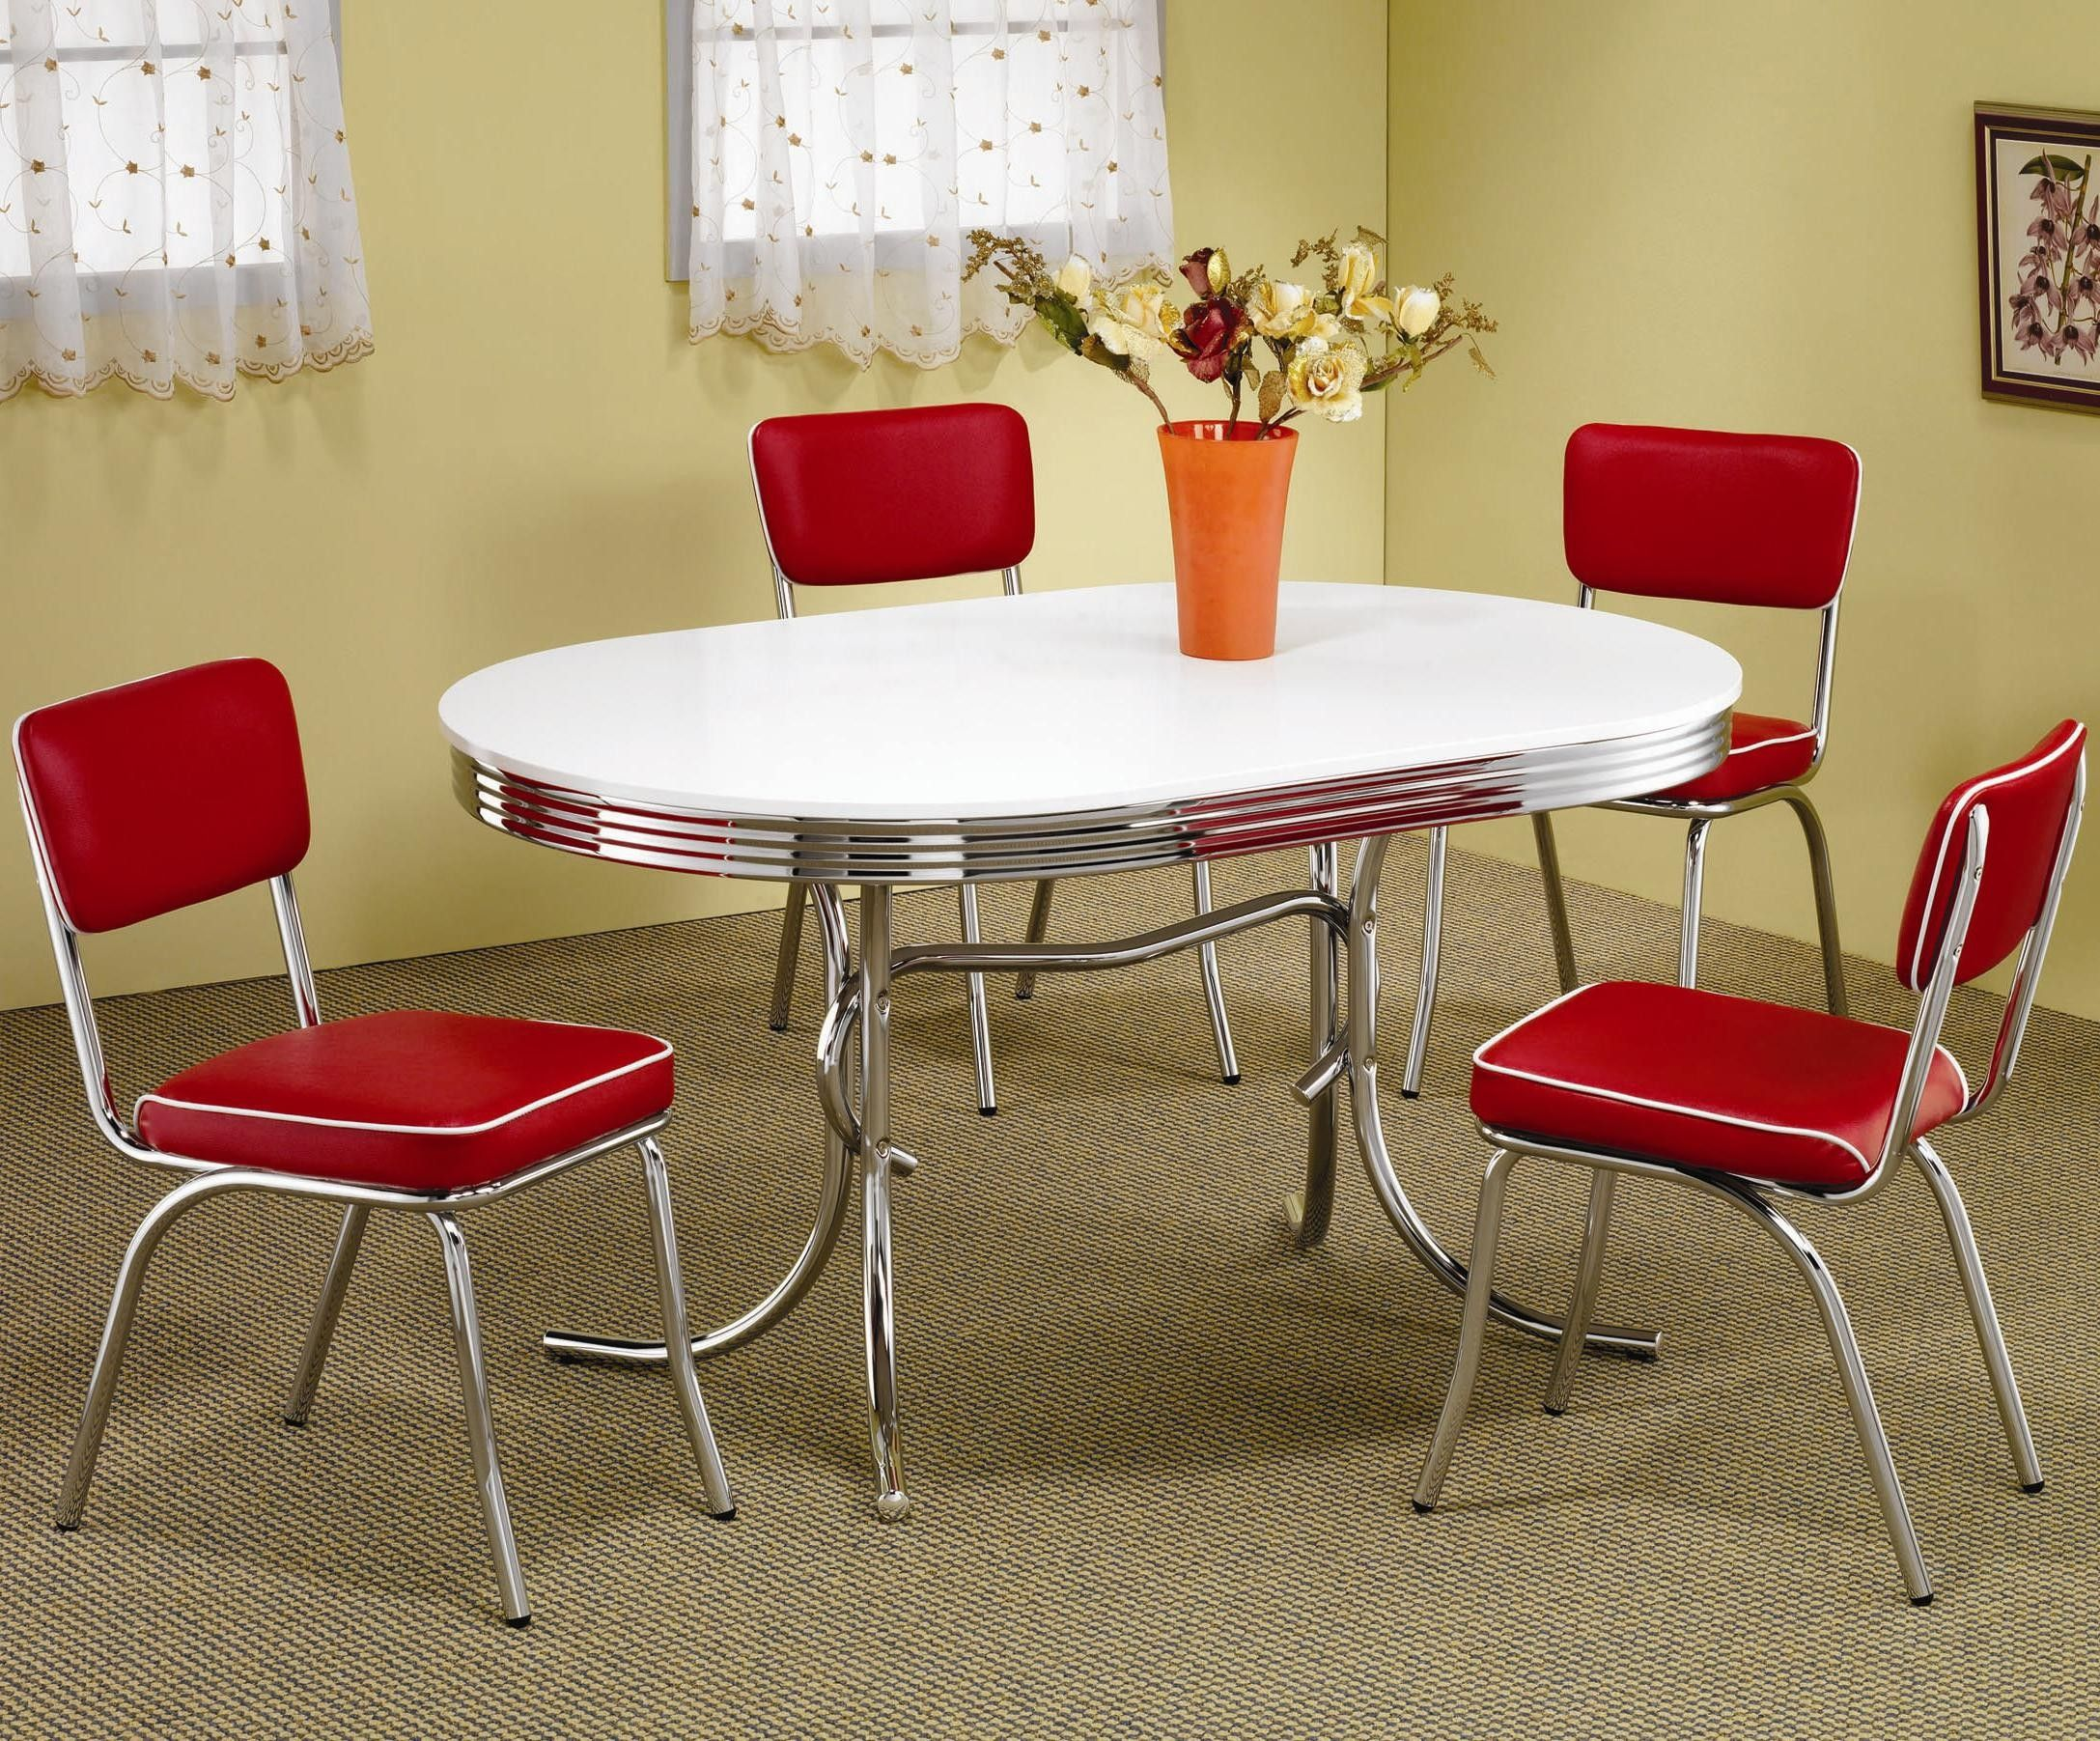 Retro Dining Room Ideas Part - 29: Off Cleveland Chrome Plated Oval Dining Table By Coaster Furniture. This  Retro Chrome Plated Oval Table Displays Distinctive Styling.